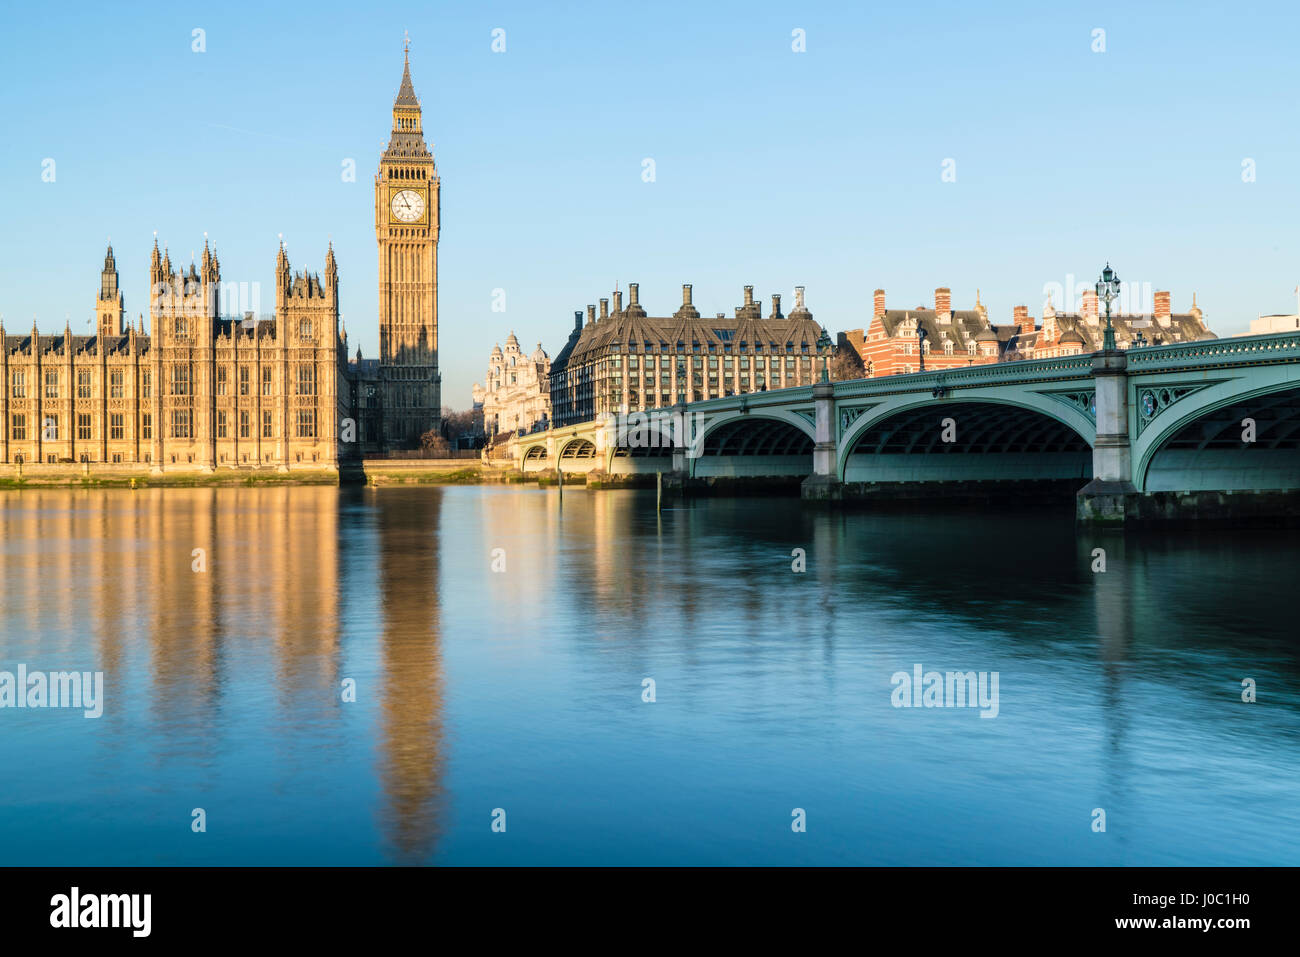 Big Ben, the Palace of Westminster, UNESCO World Heritage Site, and Westminster Bridge, London, England, UK - Stock Image